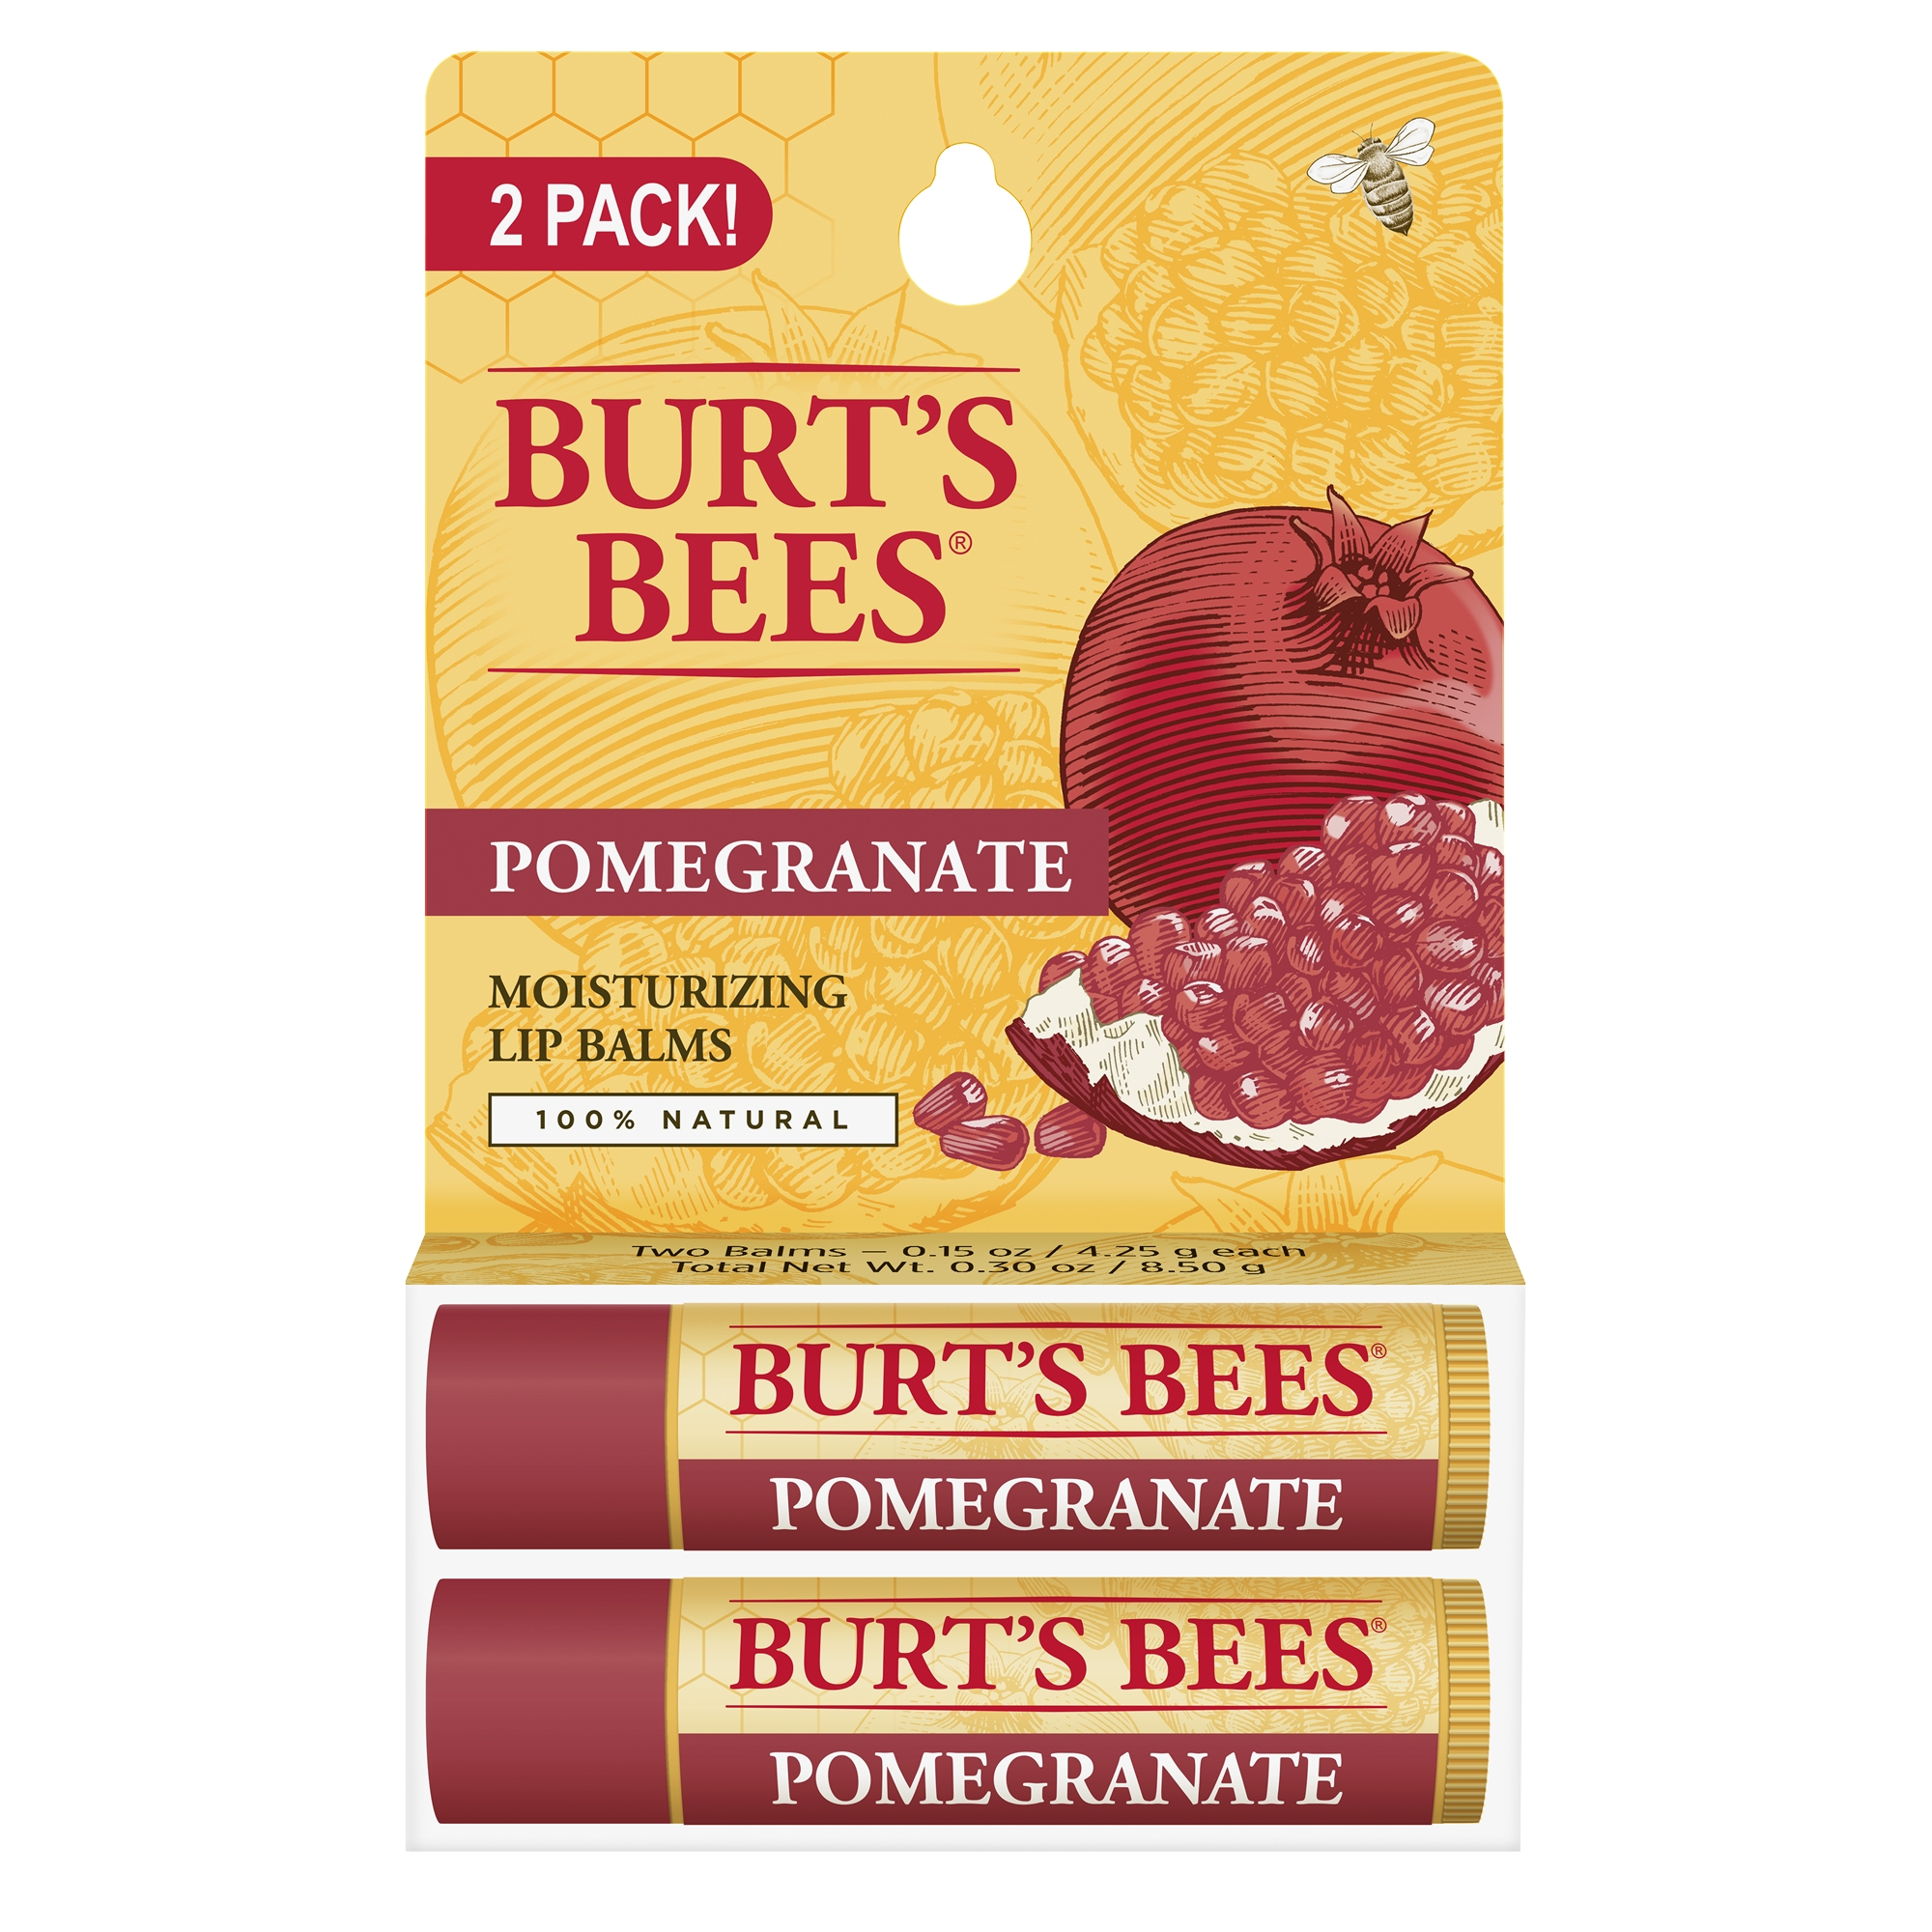 Burt's Bees 100% Natural Moisturizing Lip Balm, Pomegranate, 2 Tubes in Blister Box